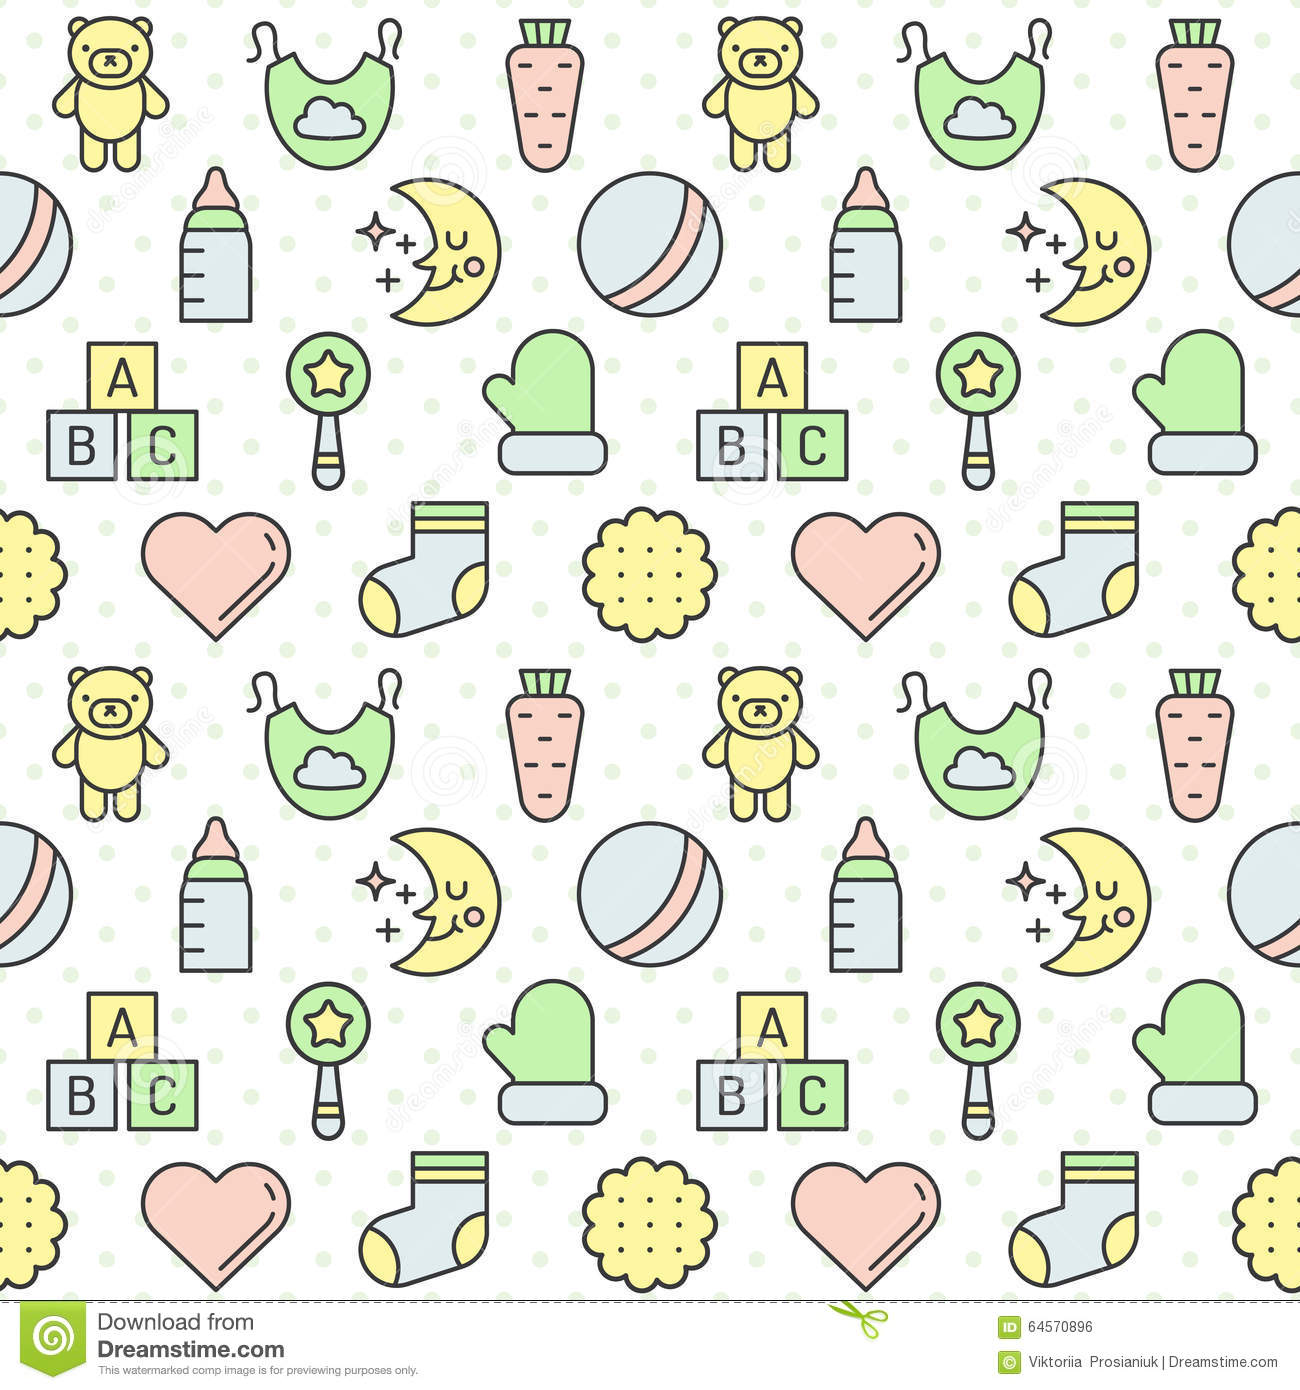 Girl Baby Bib Outline Wiring Diagrams Circuit Of 74276 Four Jk Flipflop Digitalcircuit Basiccircuit Babies And Boy Things Multicolored Cute Bottle Template